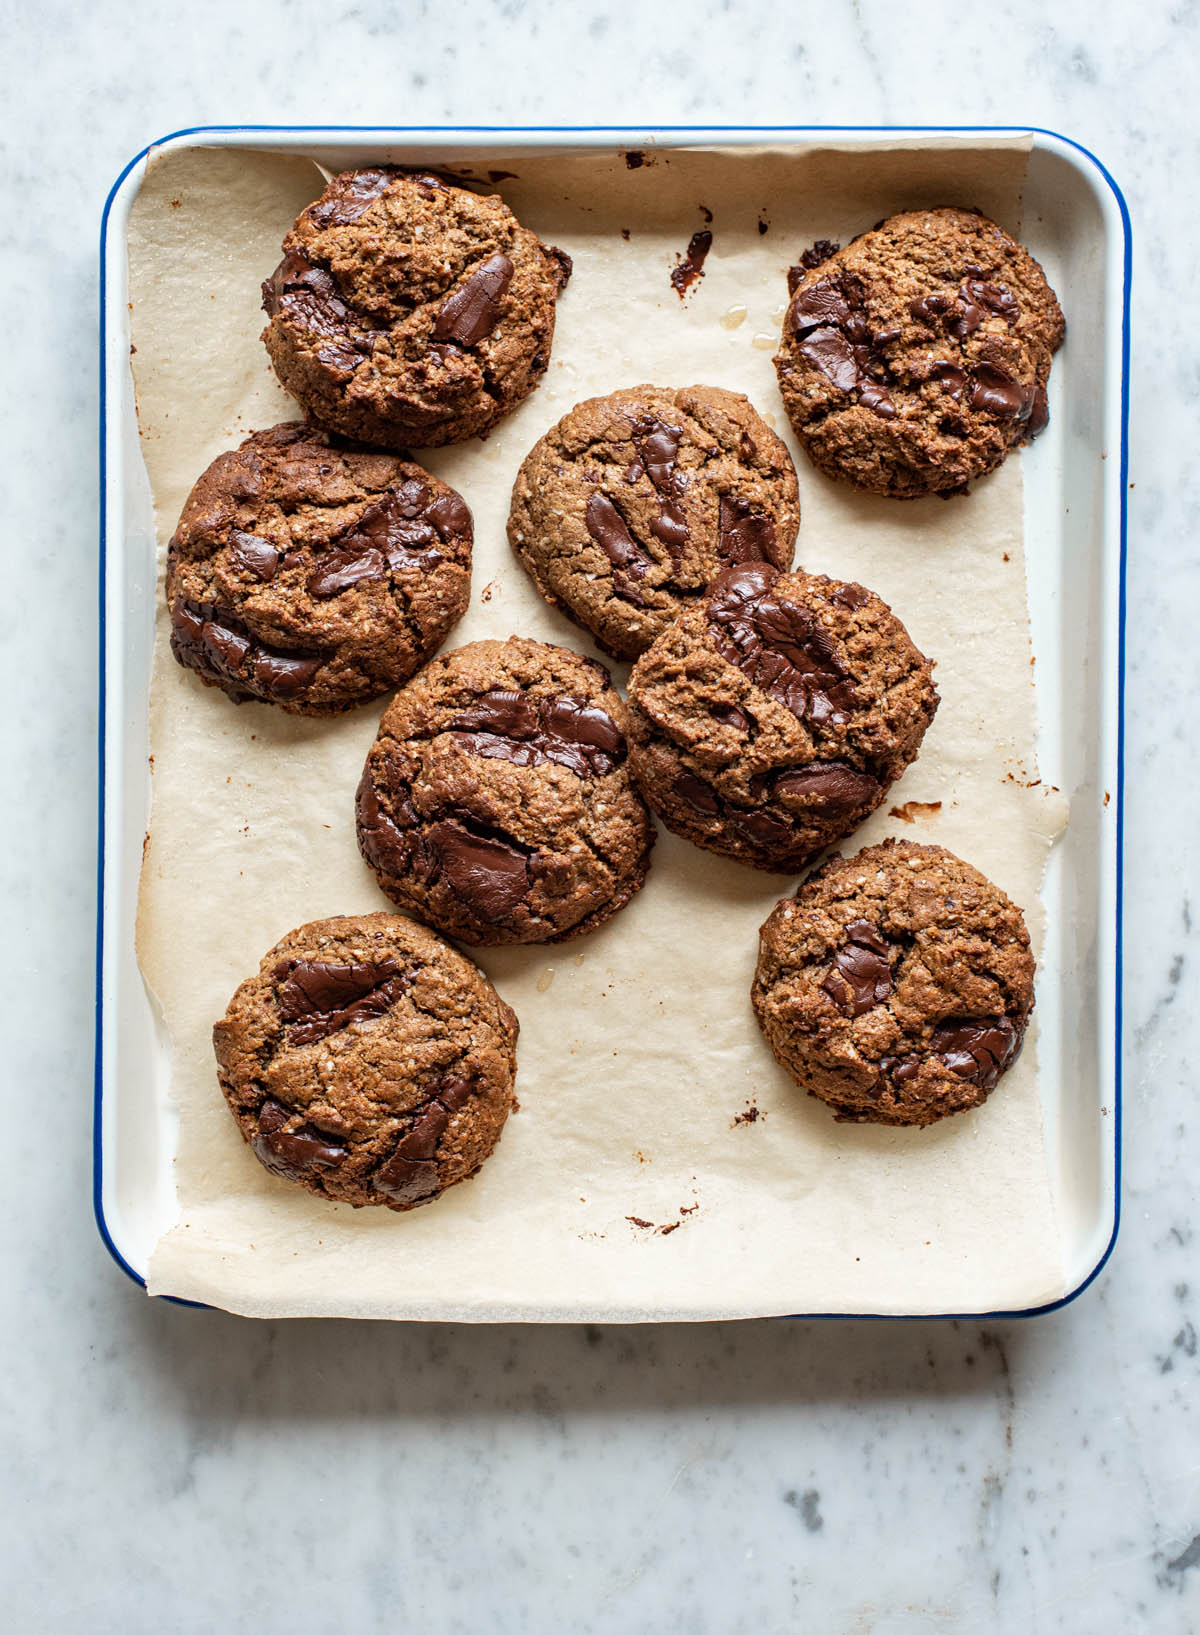 Chocolate chunk tahini cookies on a parchment lined baking tray.